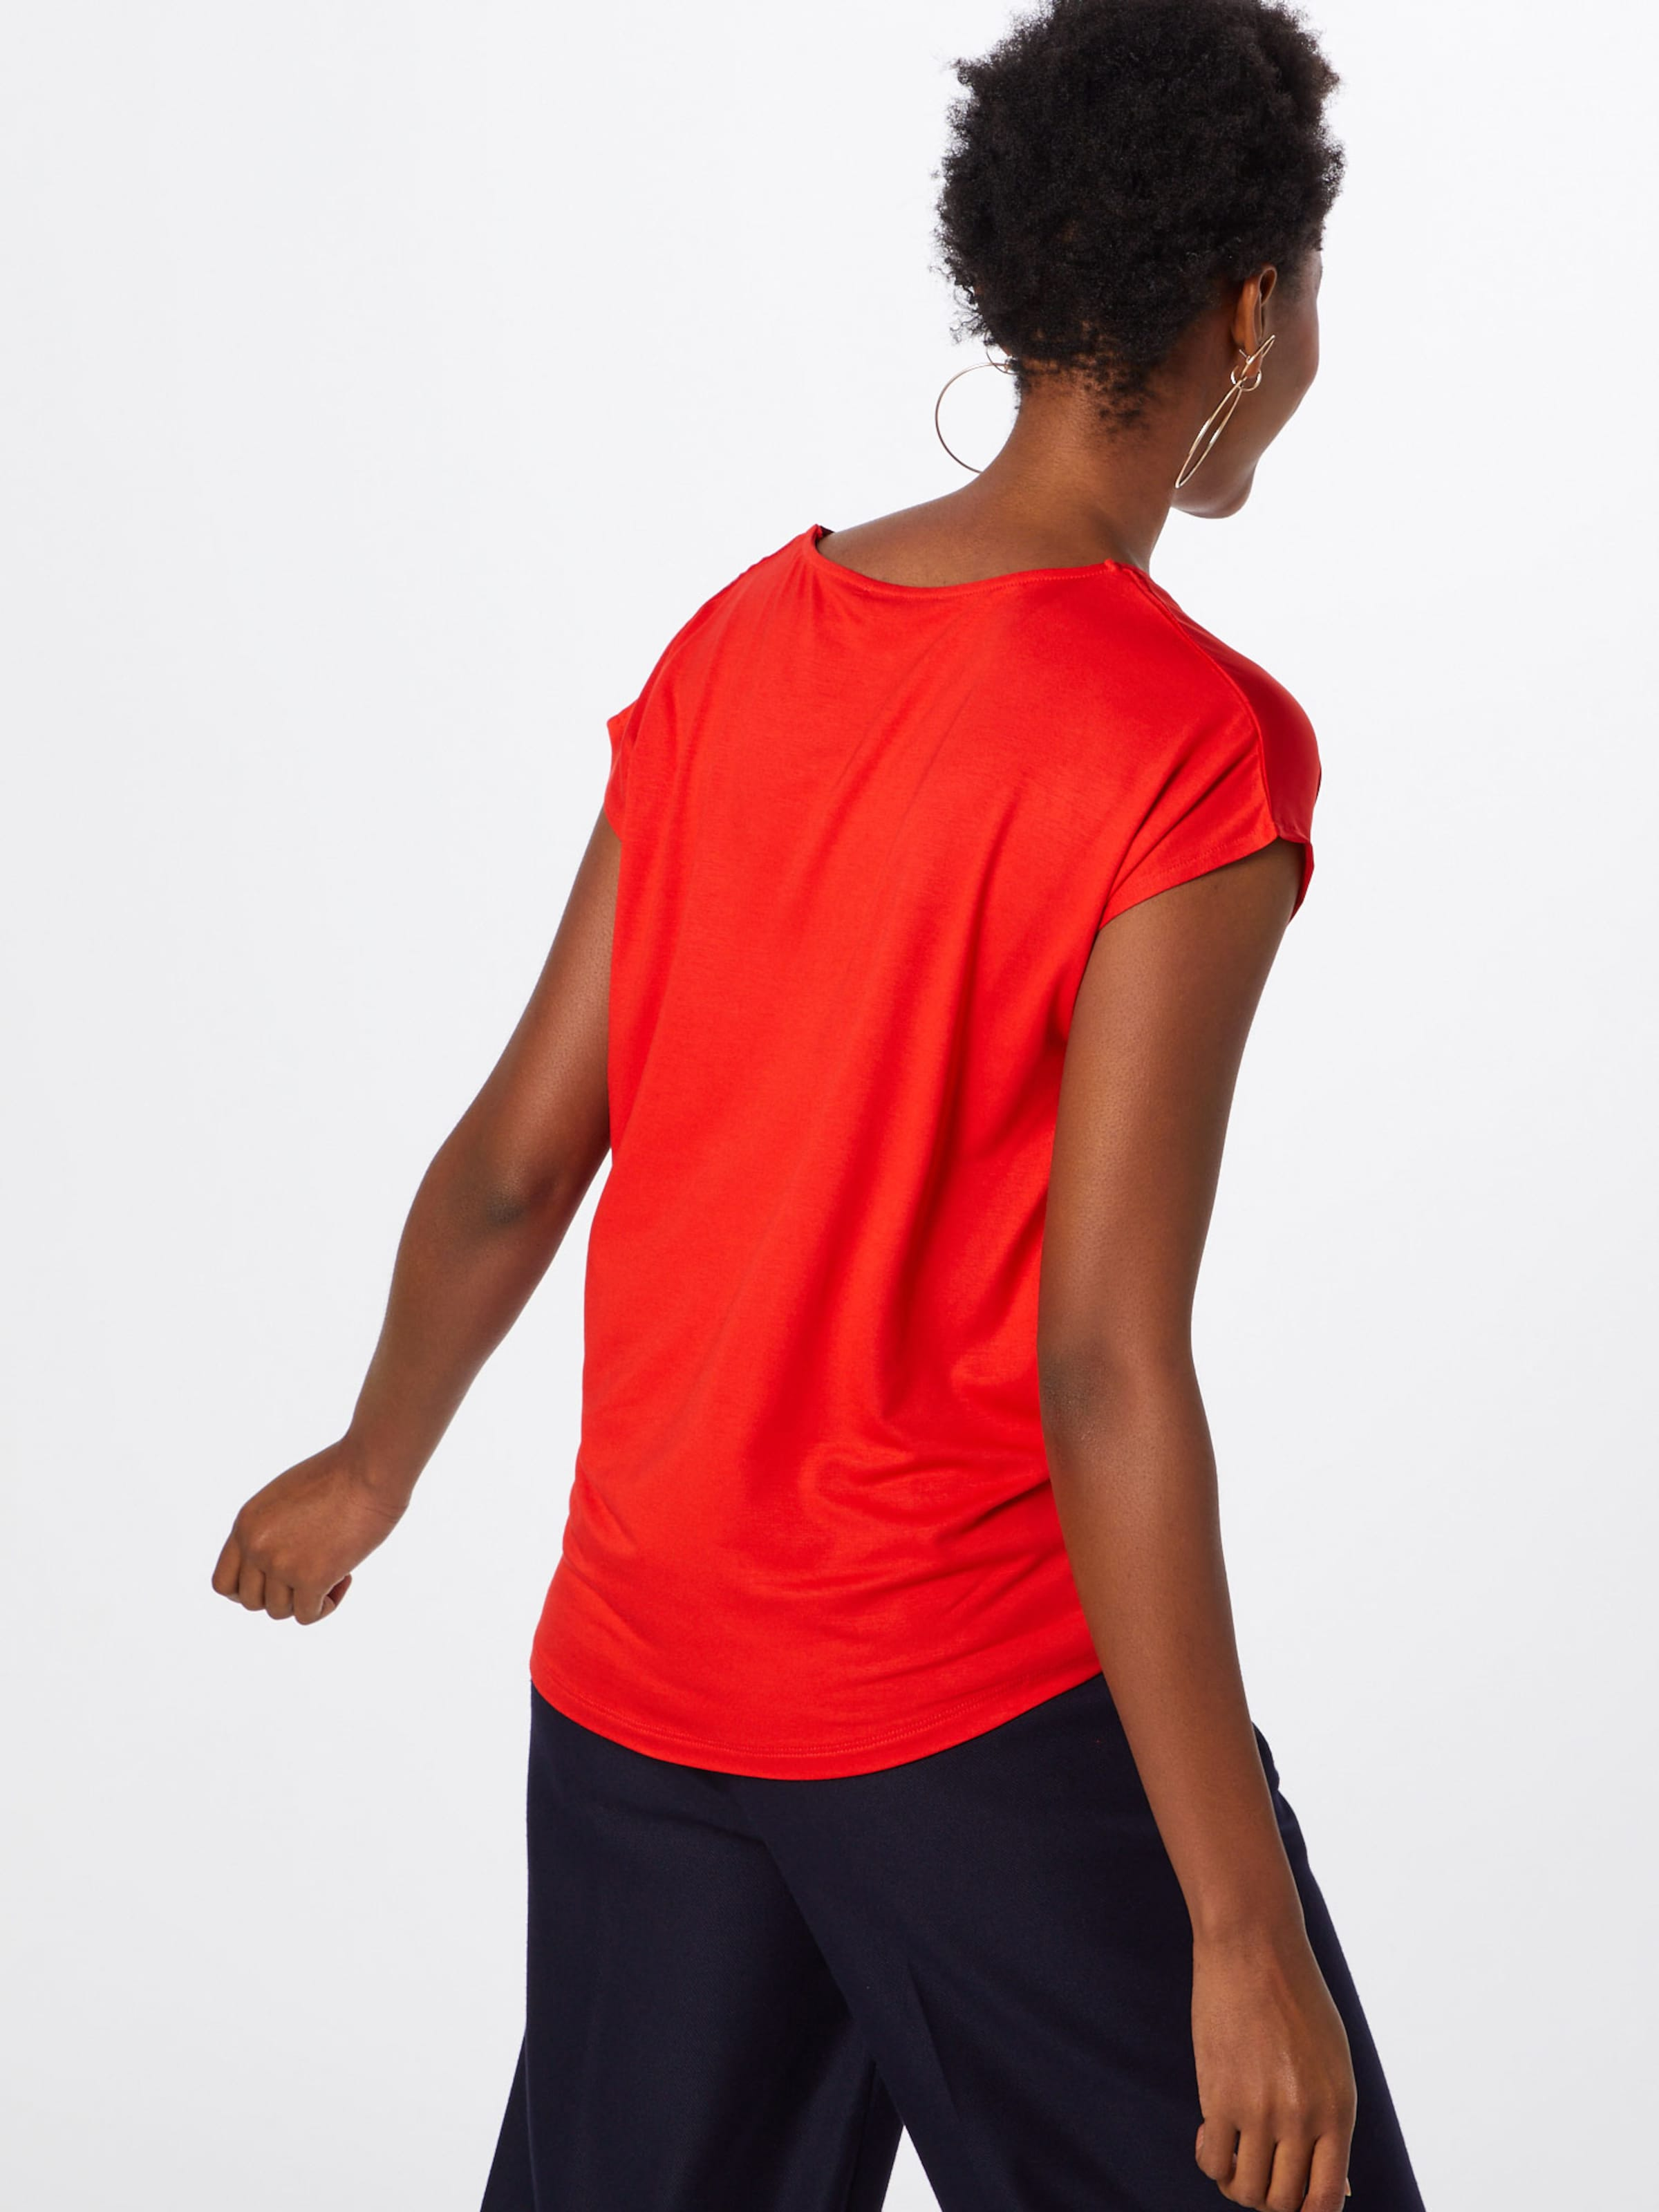 Moreamp; 'active' shirt En Rouge Orangé T 0N8wmn